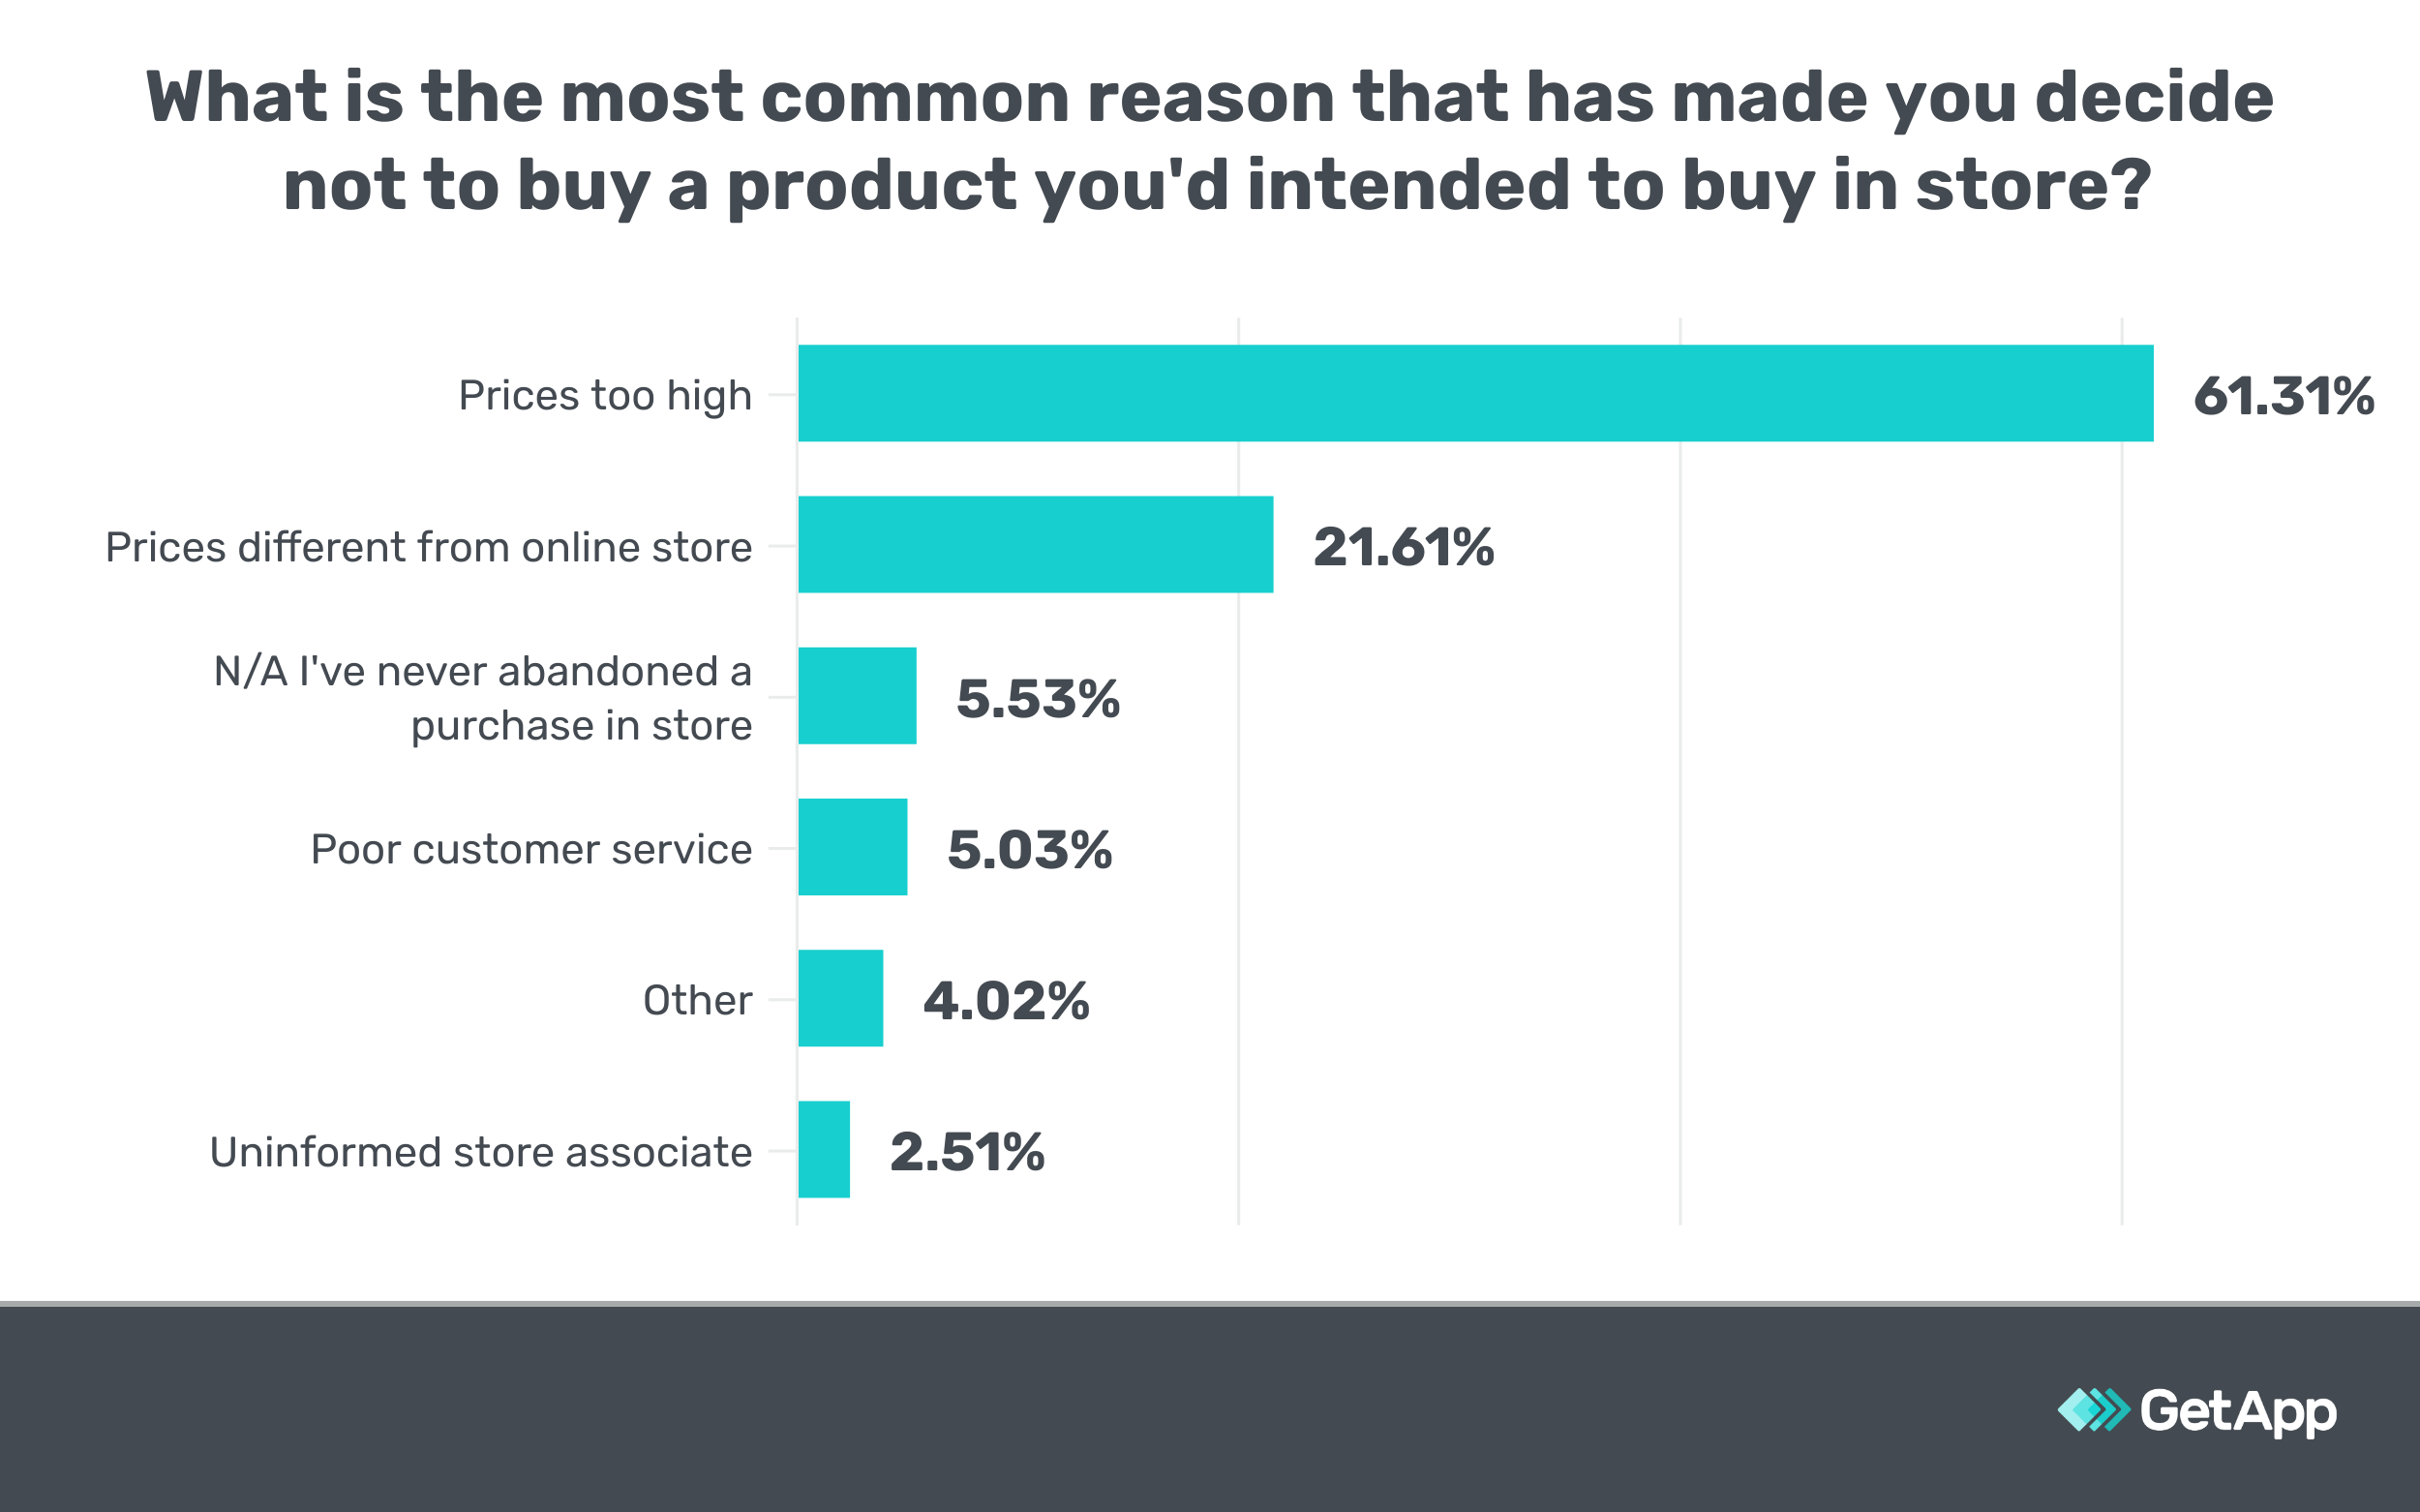 survey data showing the most common reason someone didn't buy a product was price